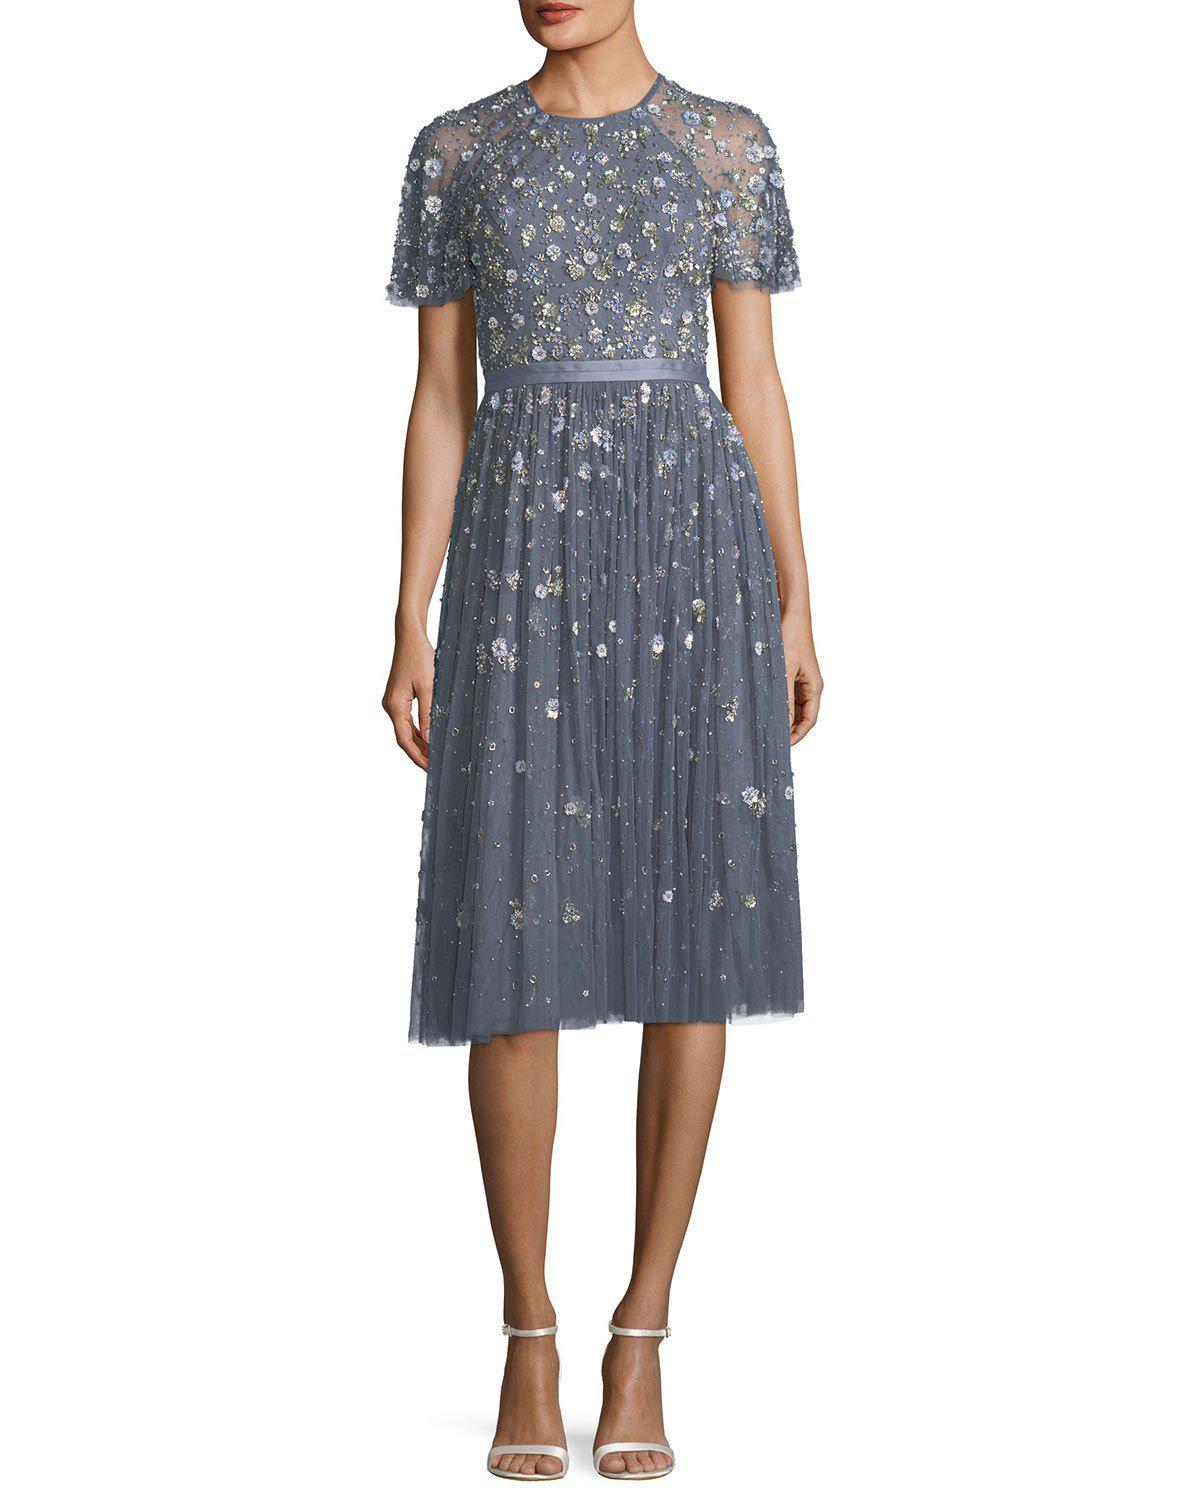 Lyst - Needle & Thread Comet Victorian Floral Lace Midi Cocktail ...